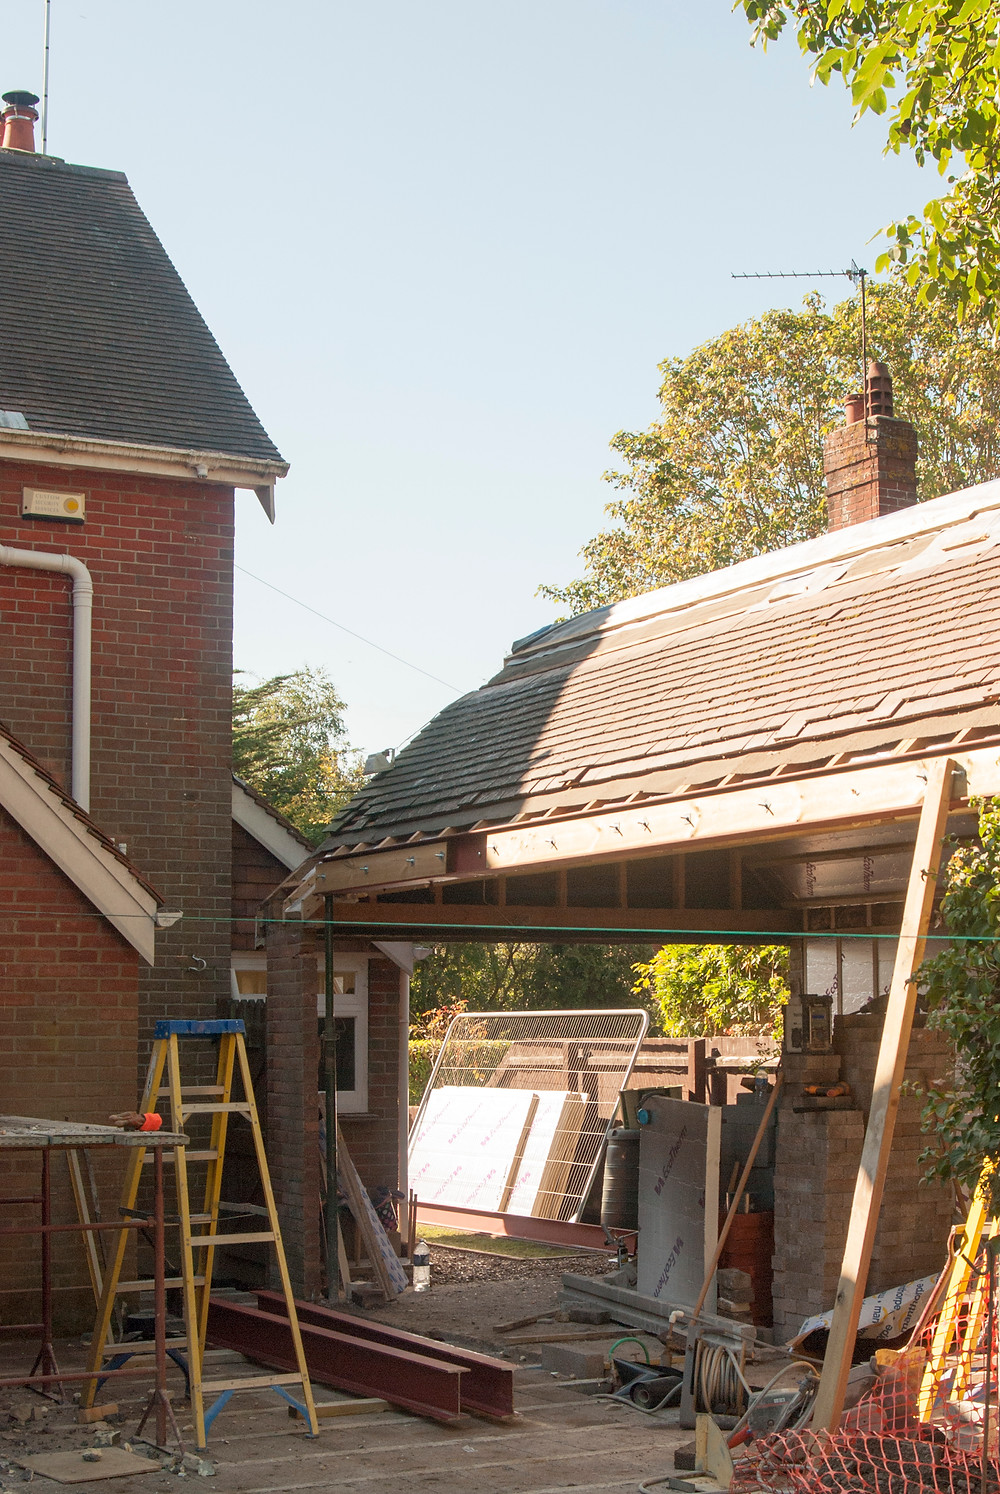 Garage conversion with vaulted ceiling extension in Ringwood, New Forest